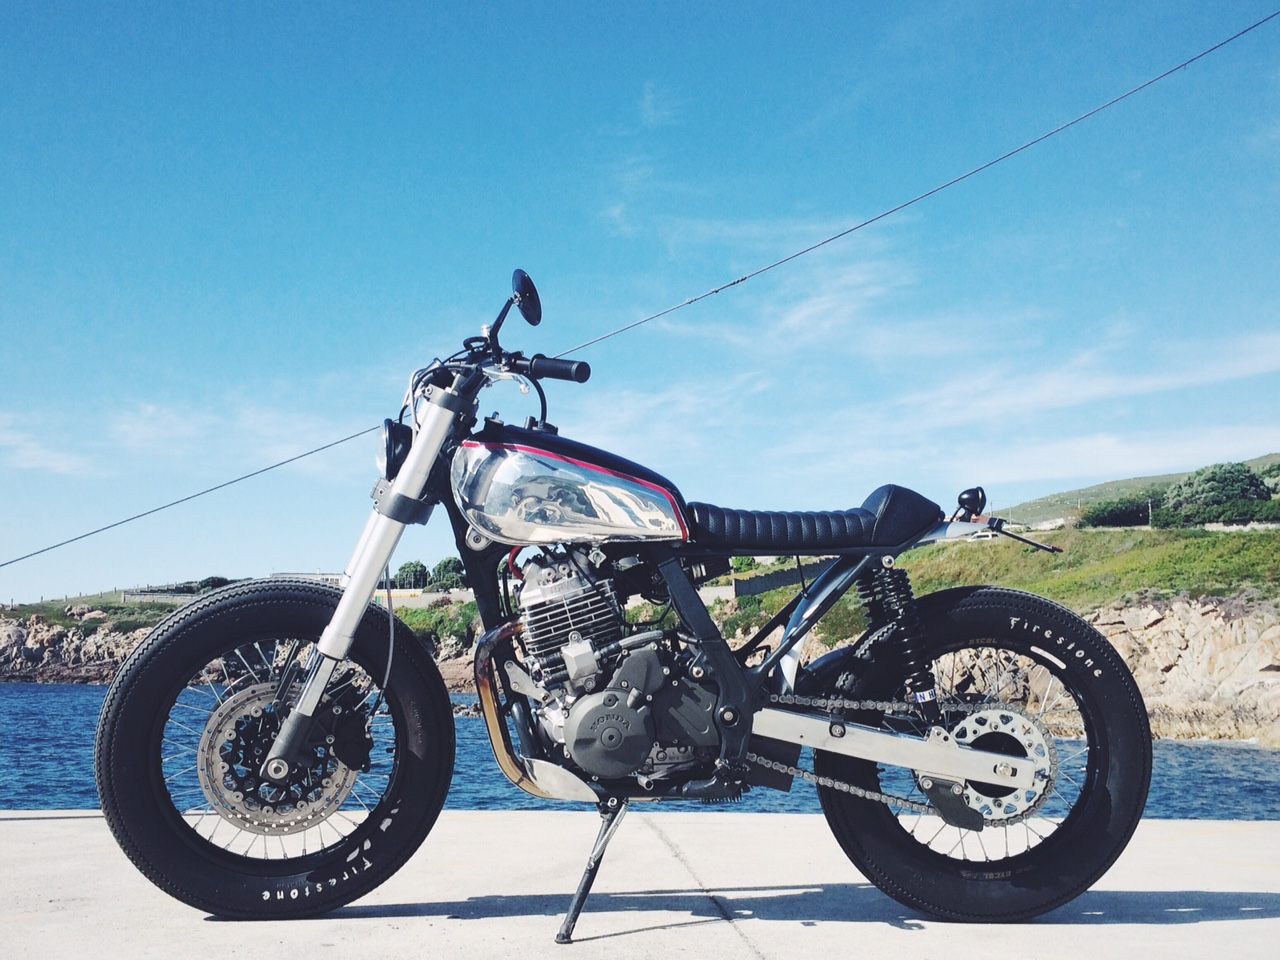 NX650 Tracker by Is Not a Crime